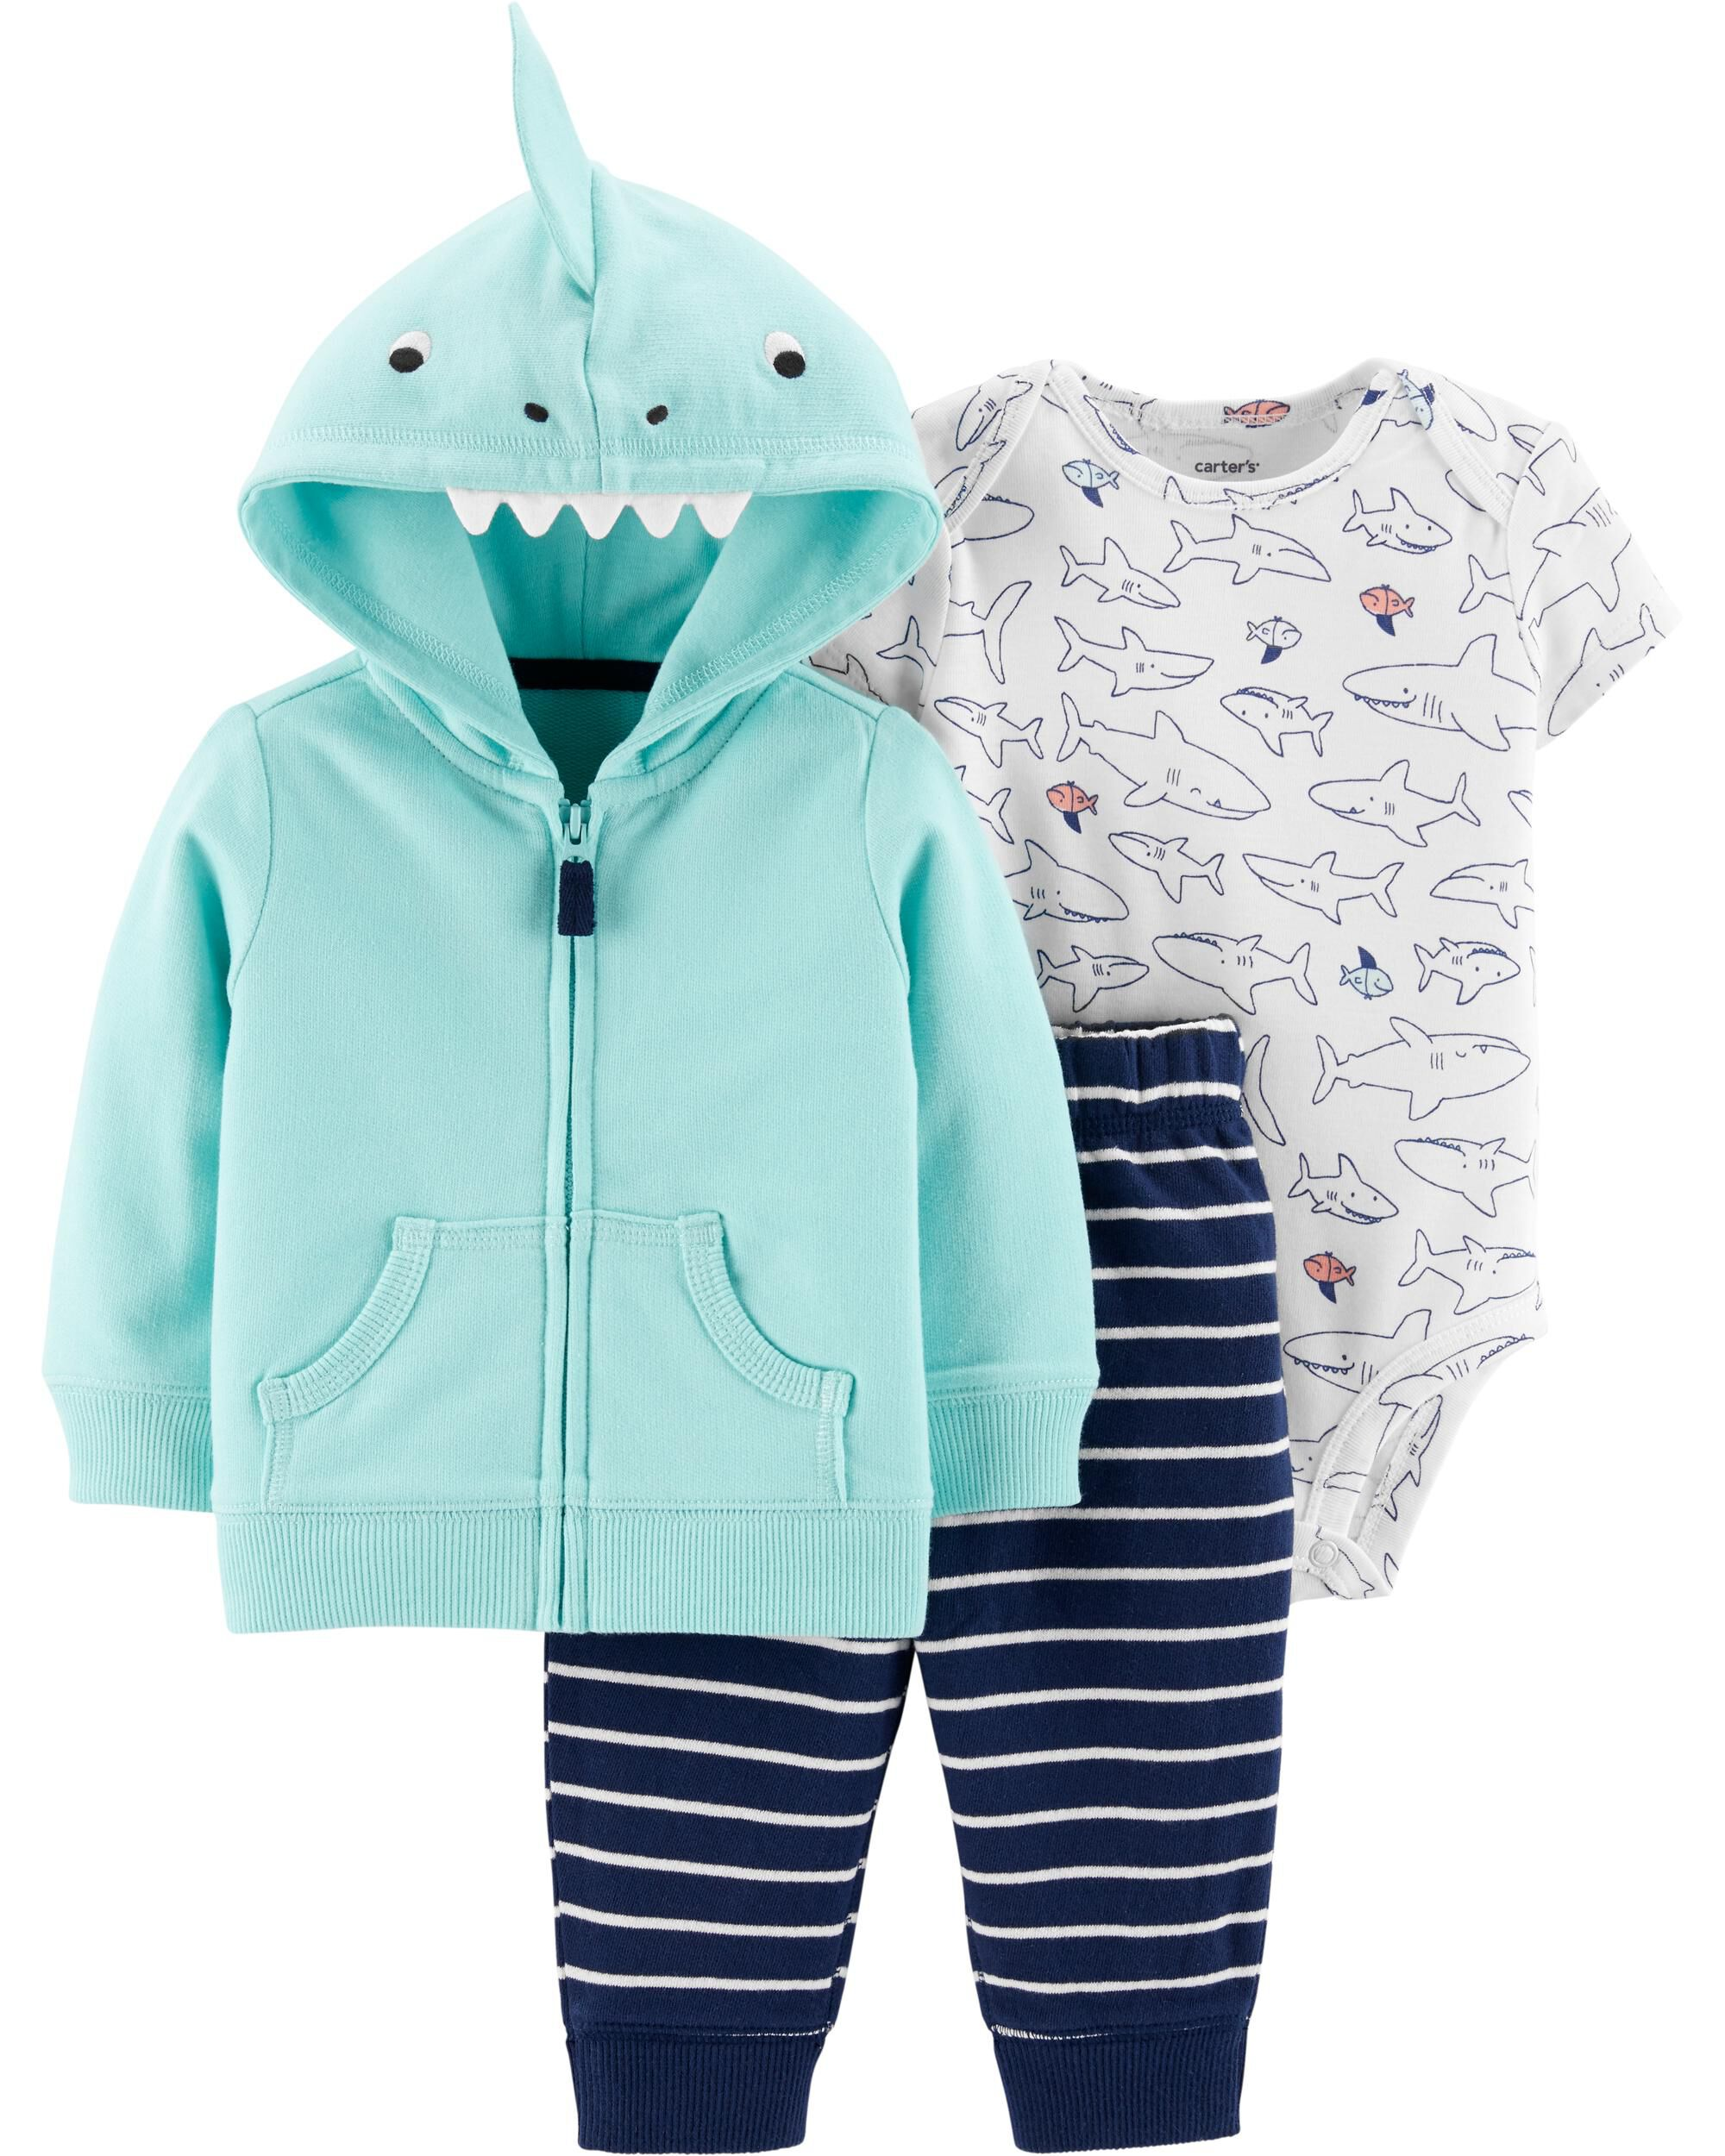 Baby Little Guy Carters Baby Boys 3 Piece Graphic PJ Set